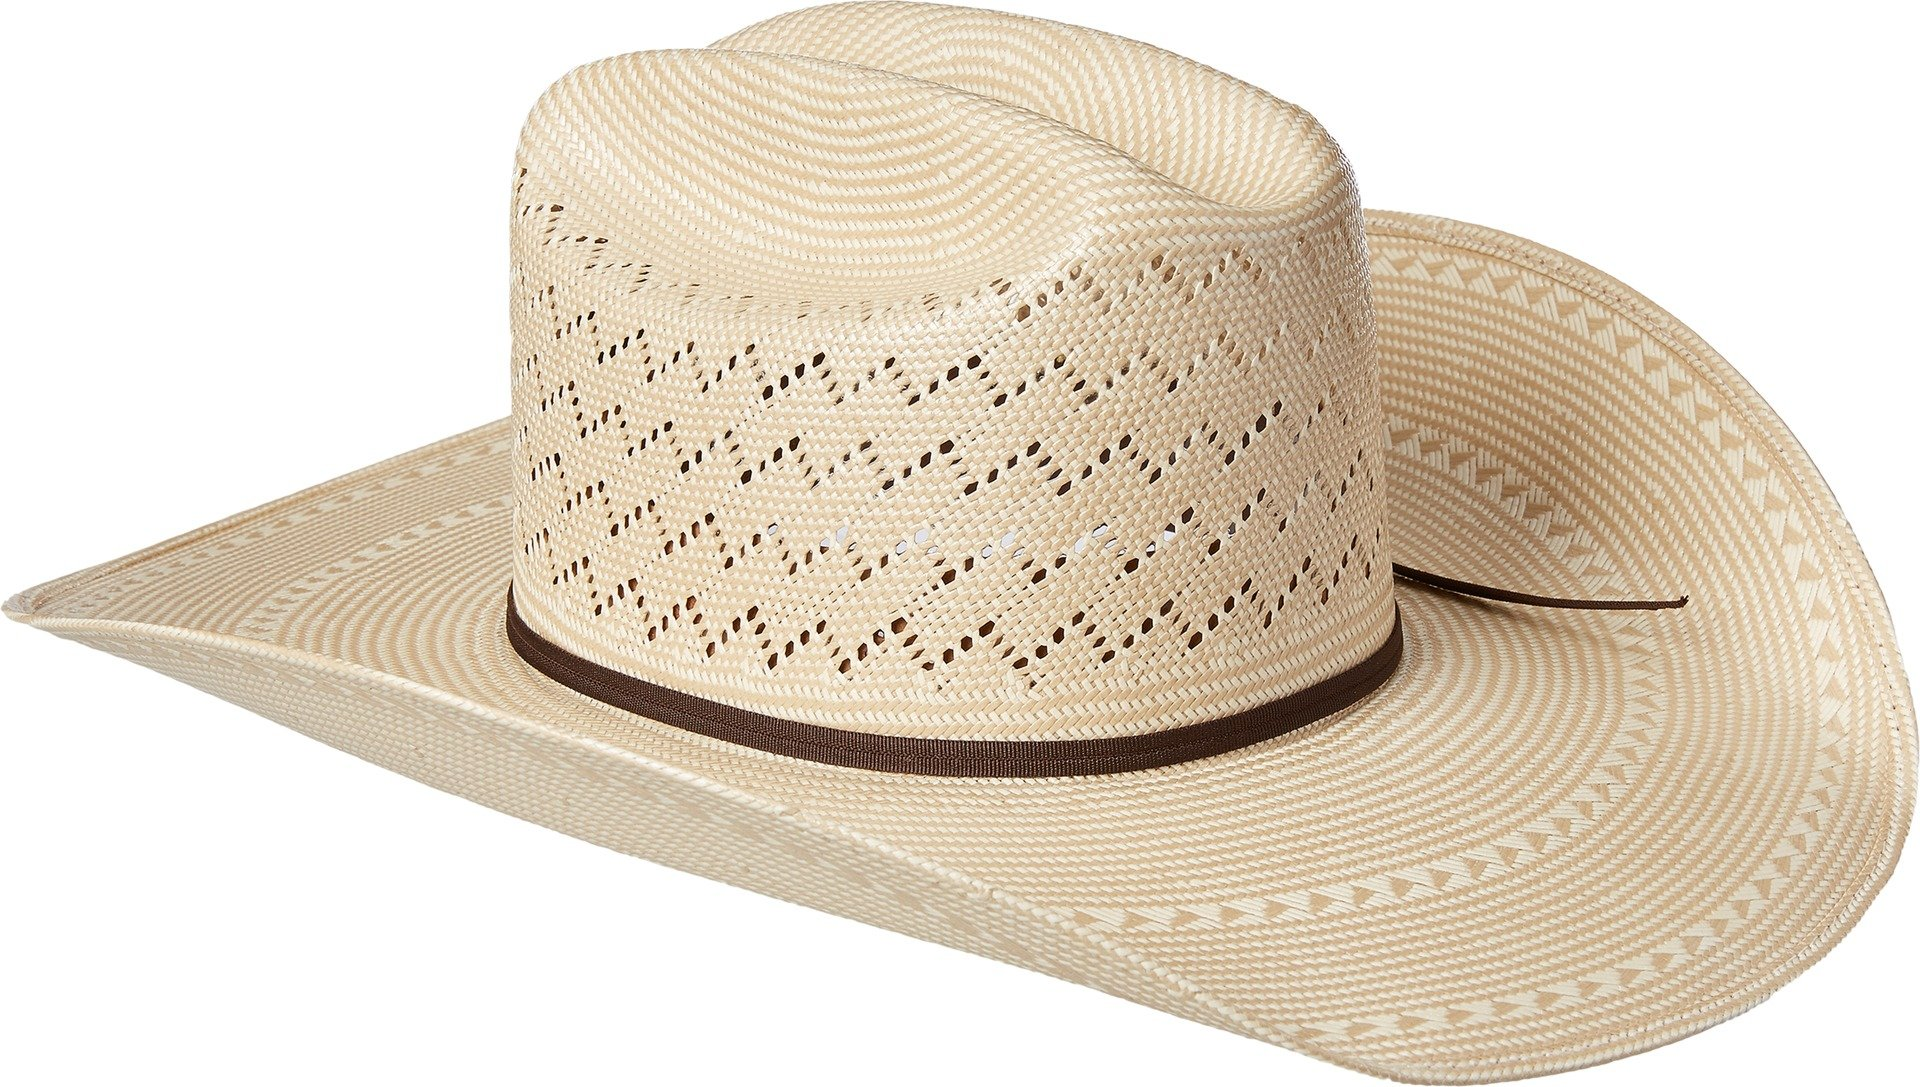 Ariat Men's 20x Cheveron Double S Cowboy Hat, Natural, 7 5/8